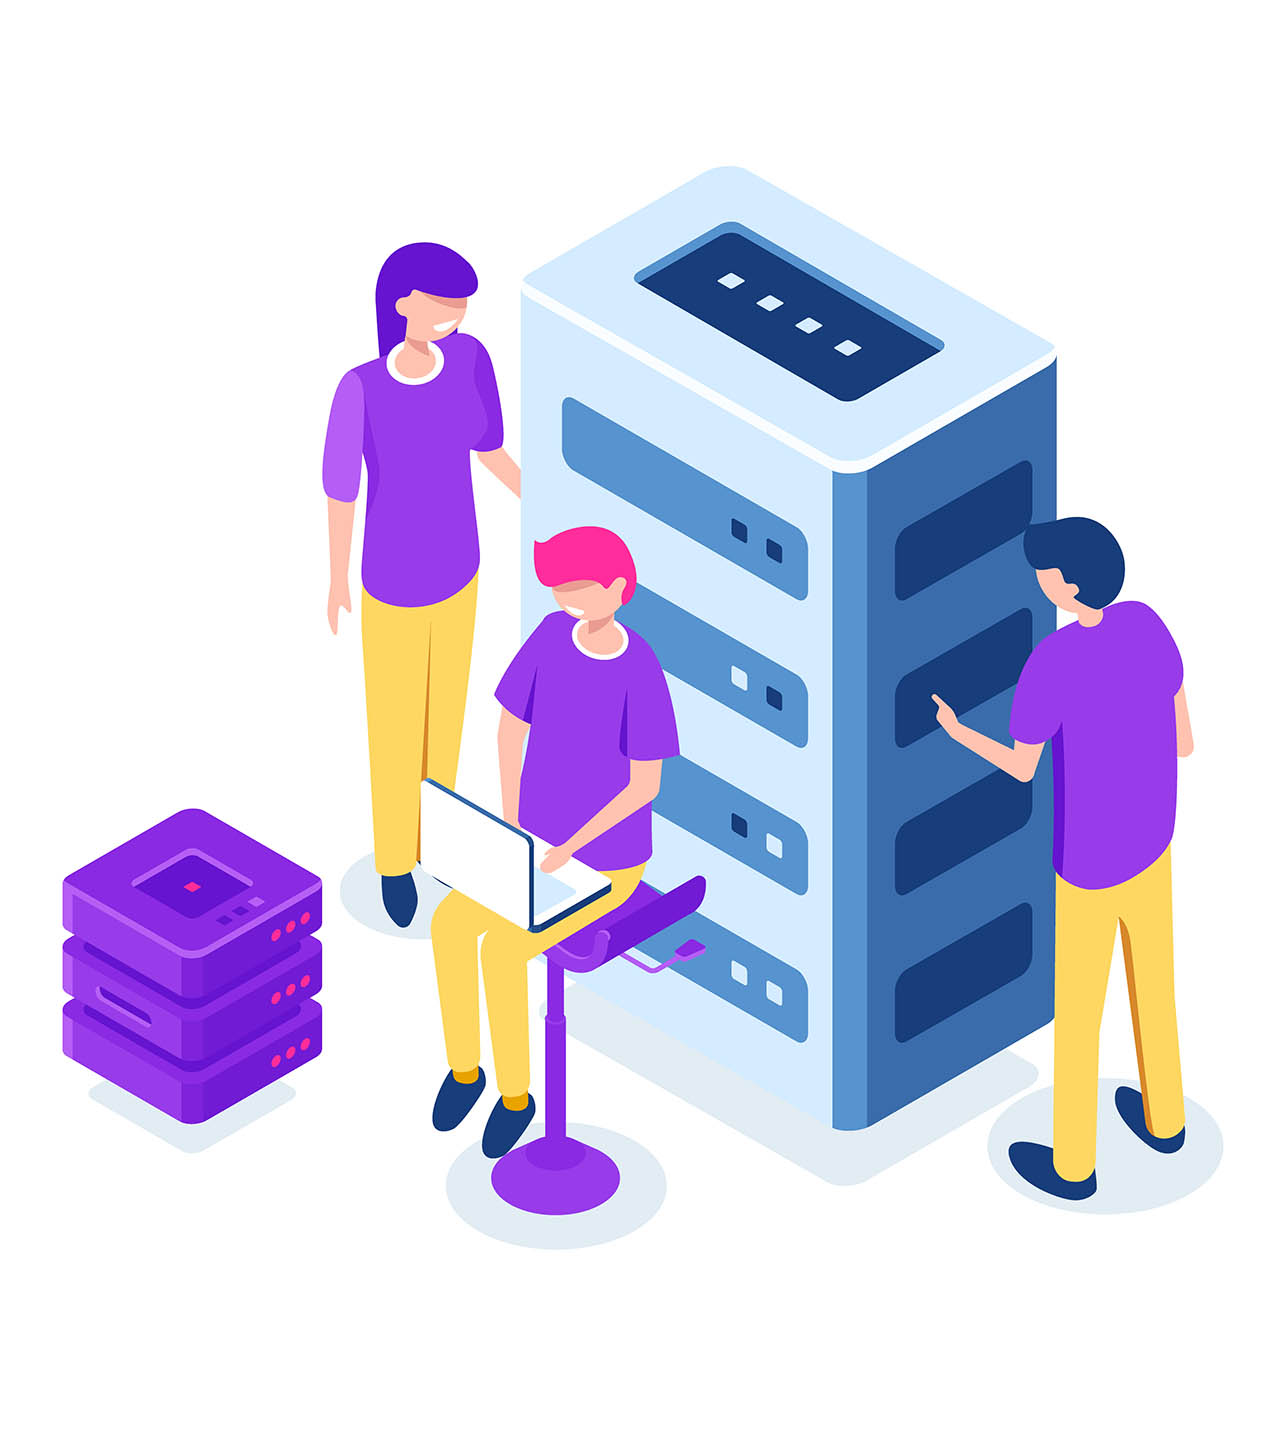 Server room isometric, datacenter and database, working on a common project, teamwork and collaboration, maintain hardware, cartoon people vector